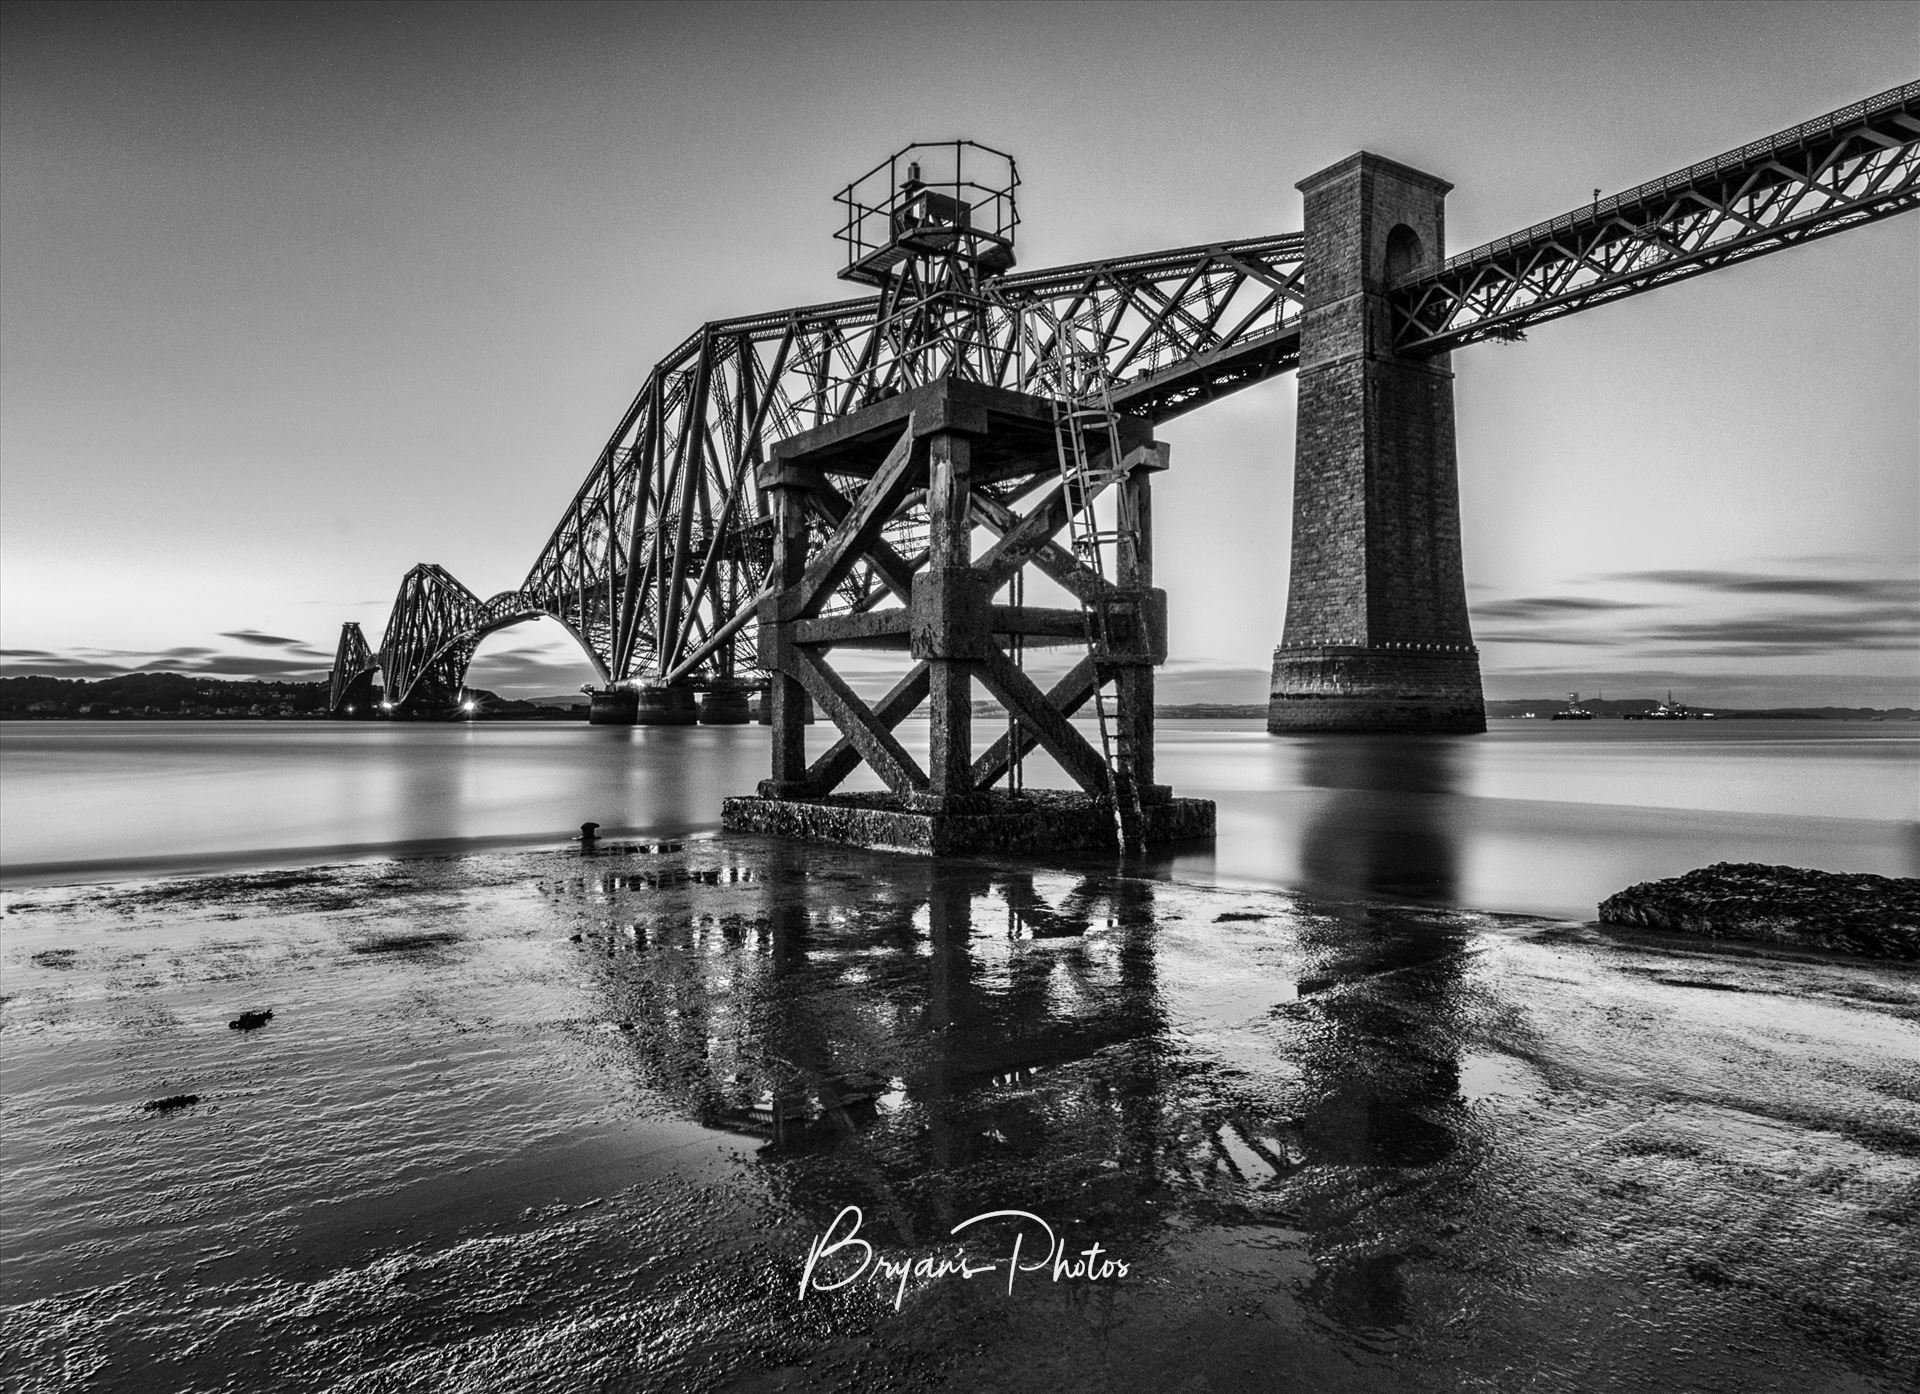 Hawes Pier A black and white photograph of the Forth Rail Bridge taken from the End of Hawes Pier at low tide. by Bryans Photos